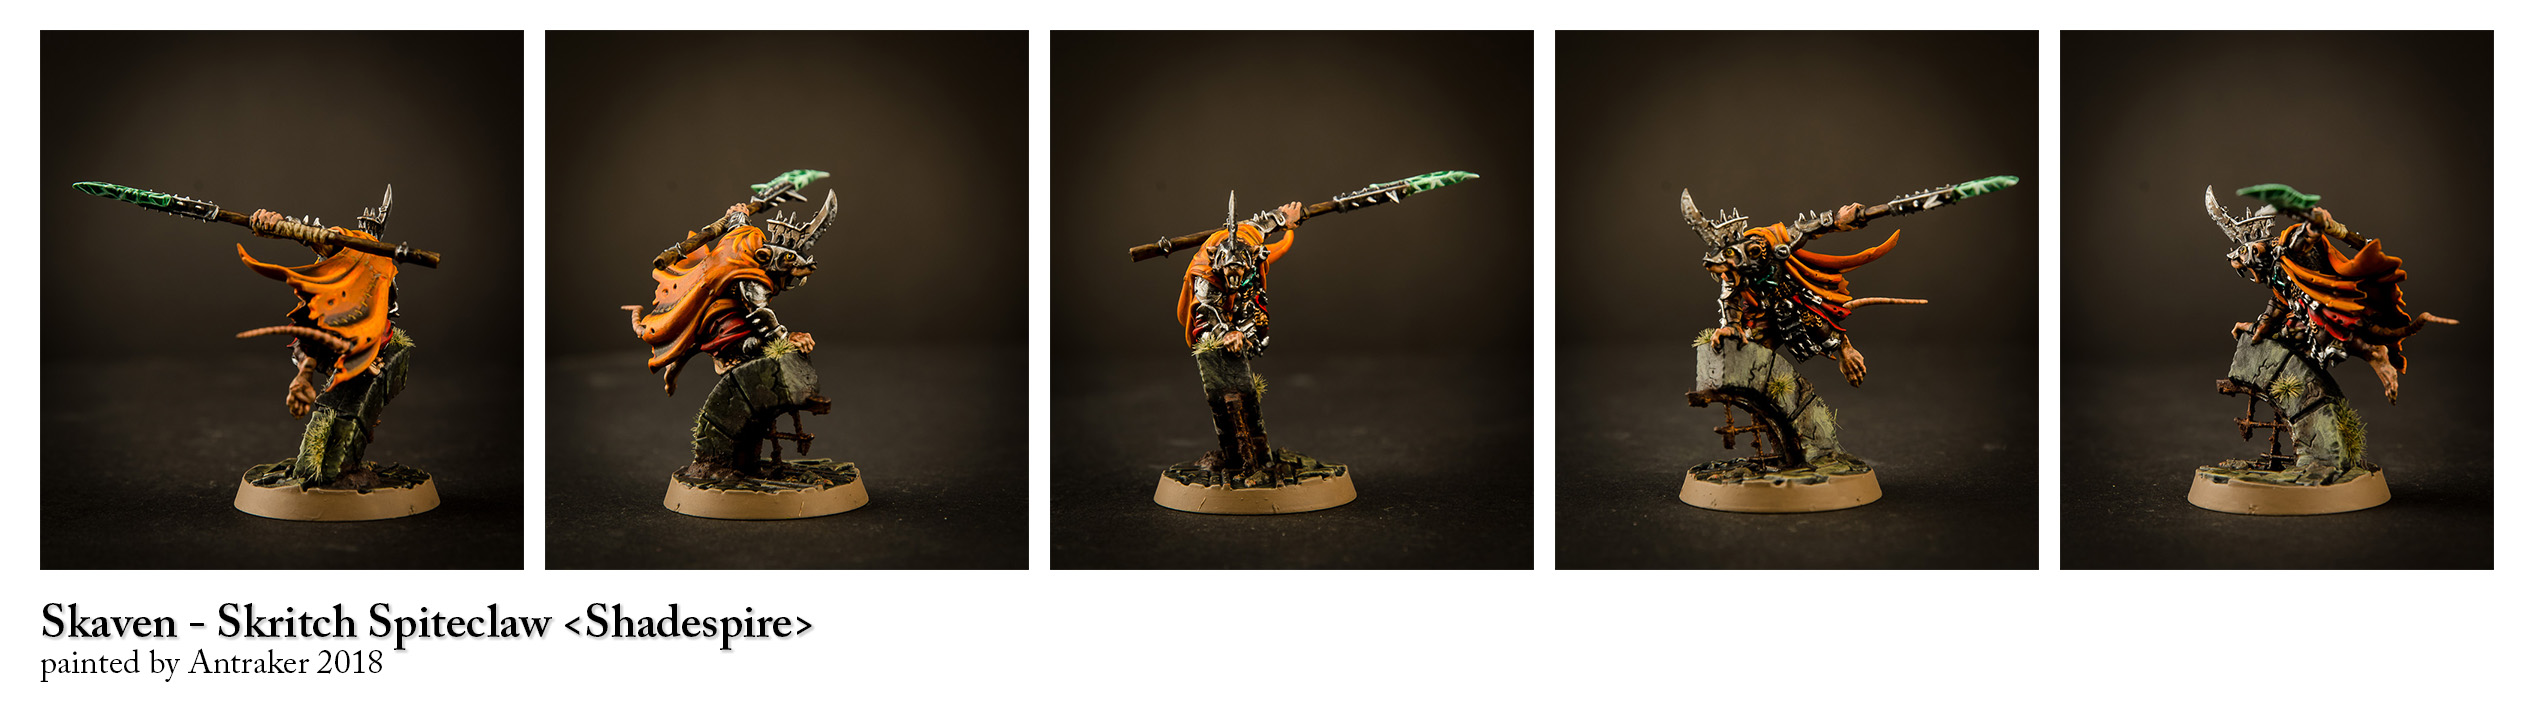 Skritch Spiteclaw -  Skaven Leader from Shadespire.